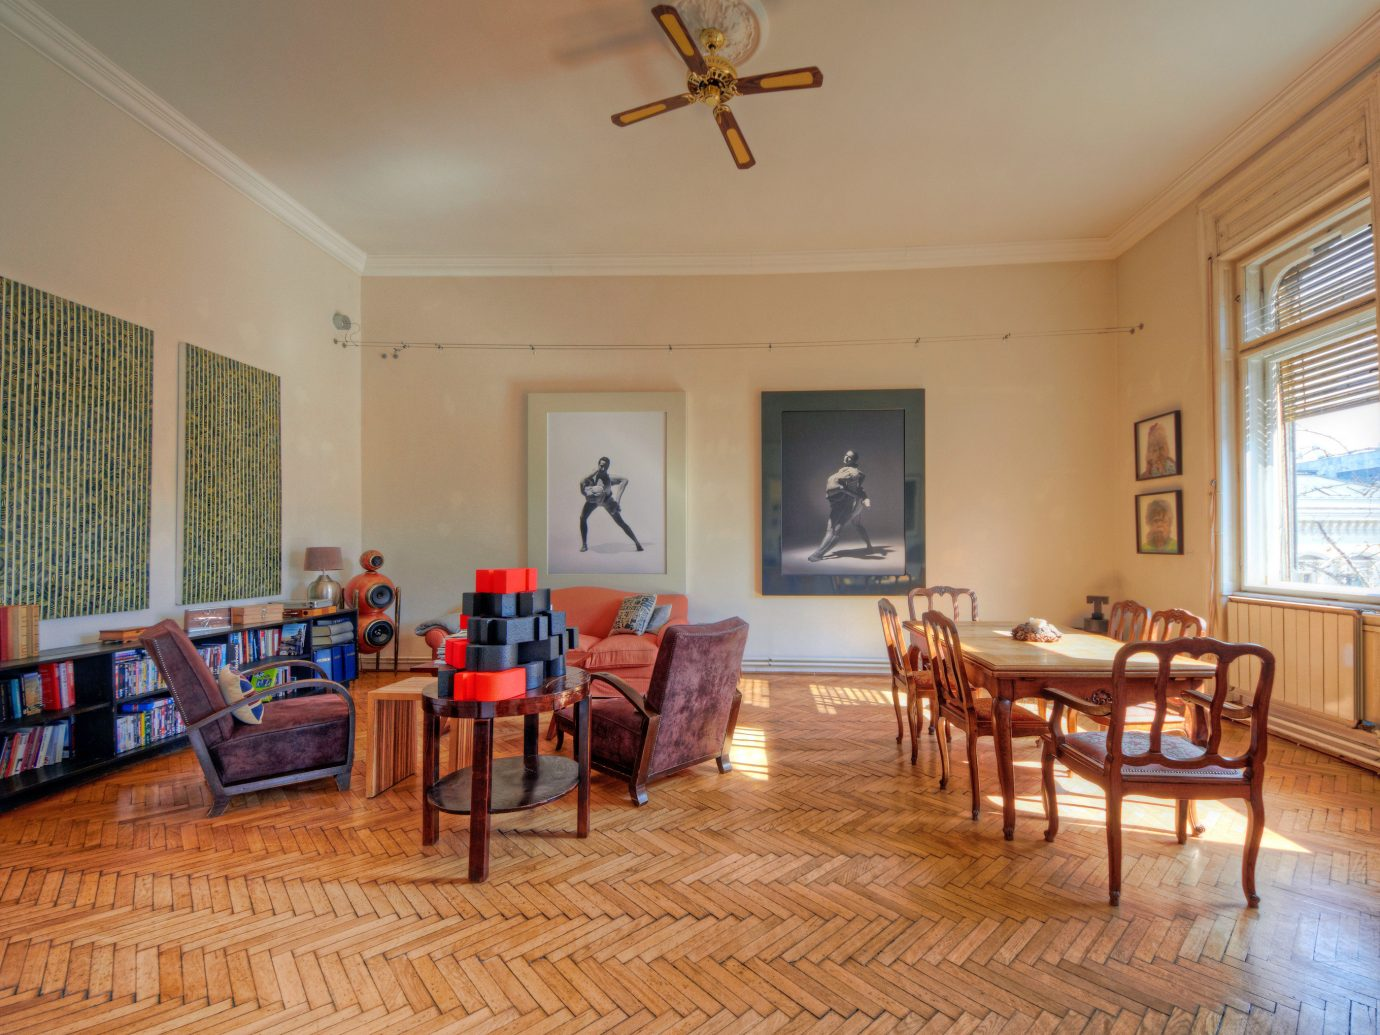 Budapest Cultural Design europe Hotels Hungary Living Lounge Modern Rustic indoor wall floor ceiling room property chair dining room estate furniture real estate hardwood home living room cottage Dining Villa interior design wooden farmhouse wood flooring apartment Resort wood decorated several